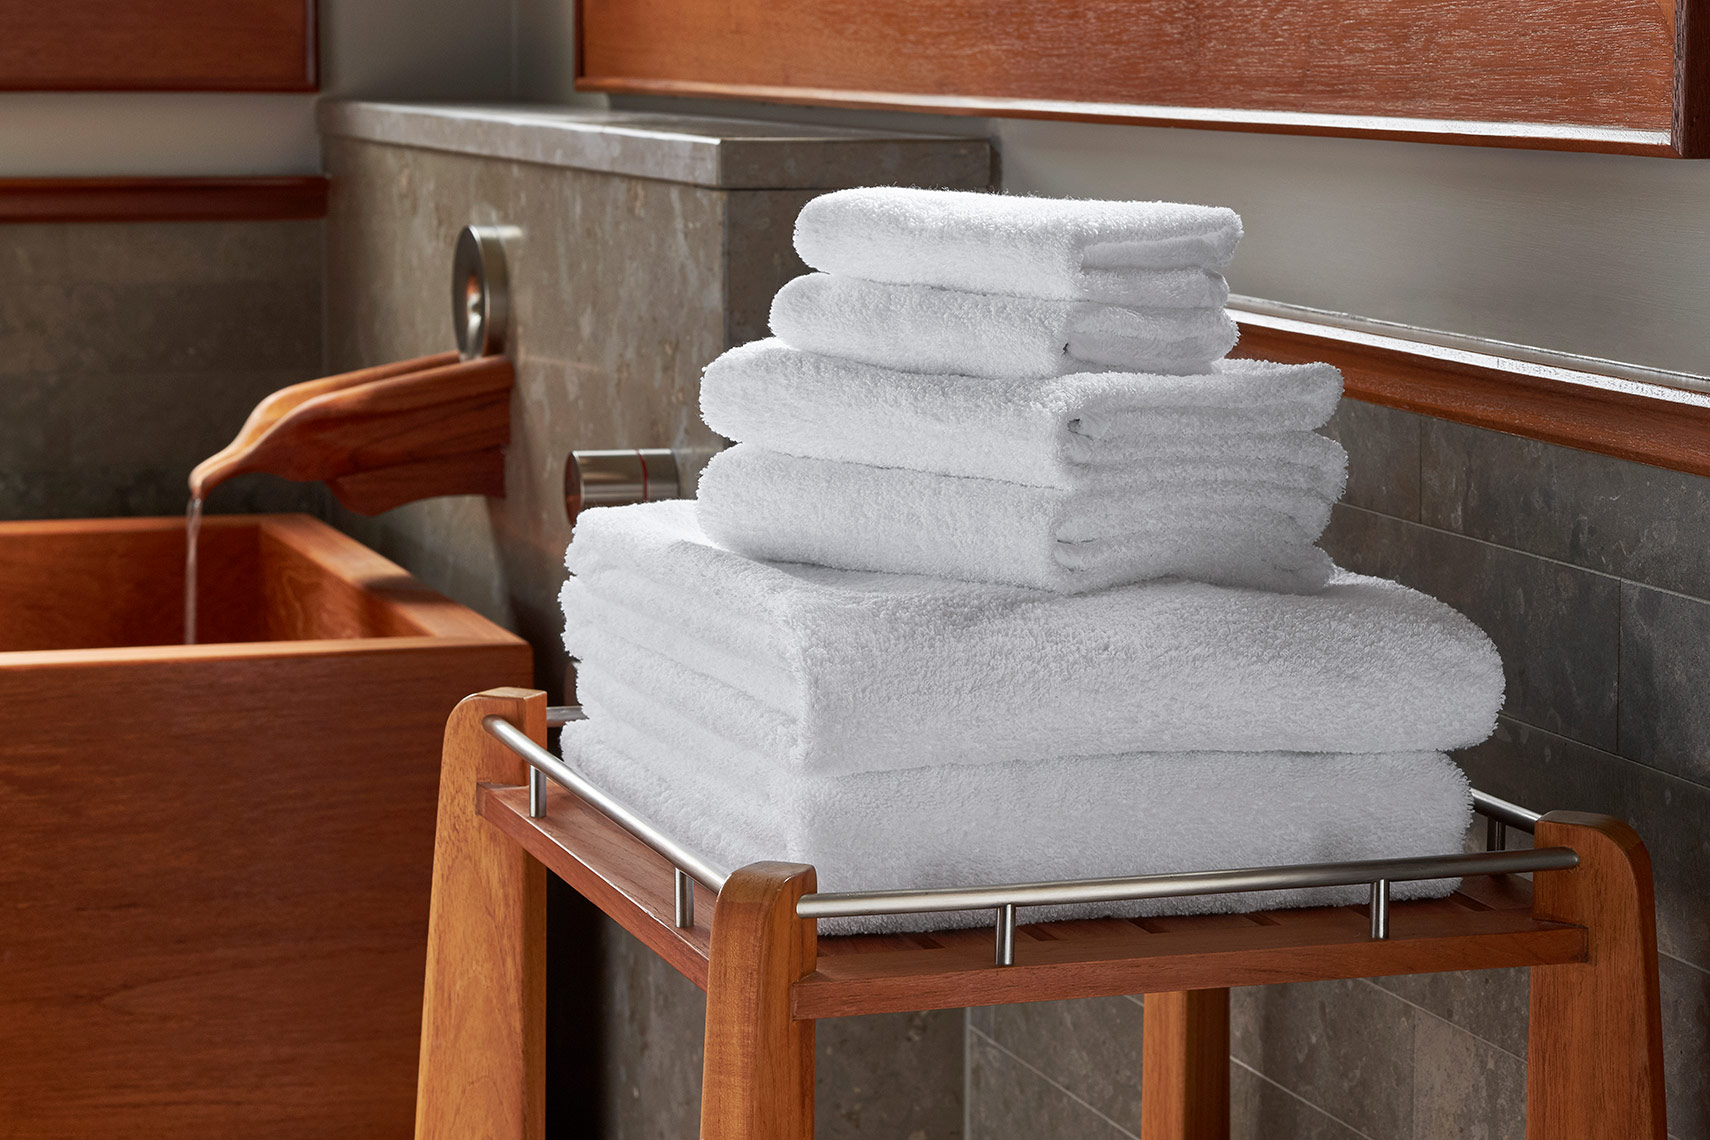 HOTELS-ShopJW8-Towel-Set